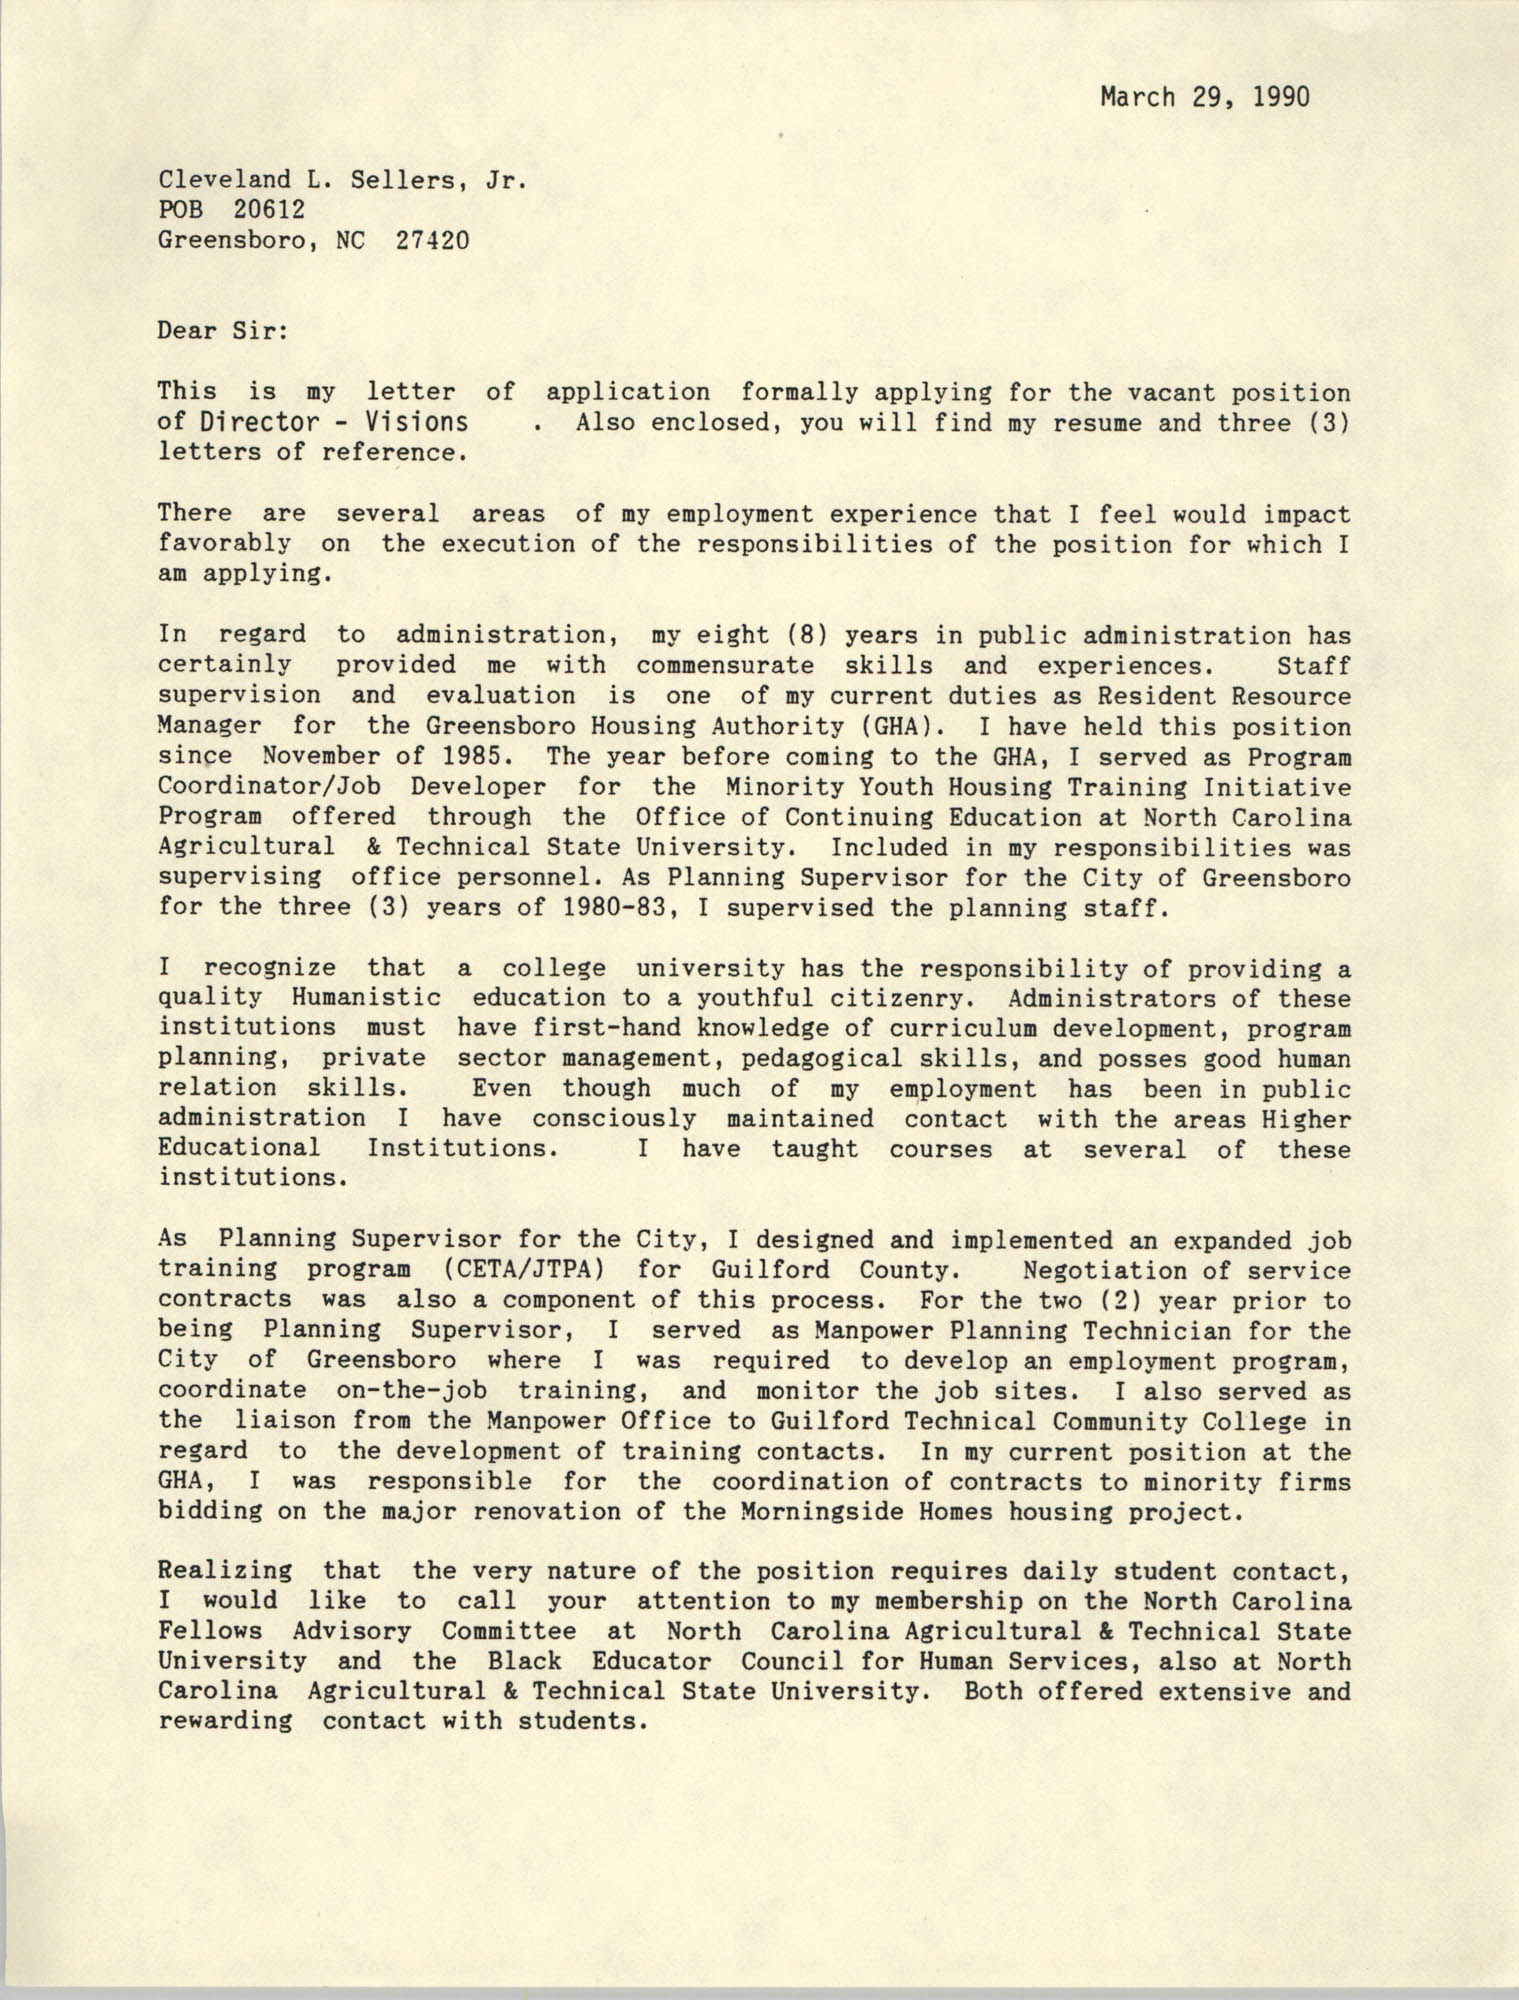 Letter from Cleveland Sellers, March 29, 1990